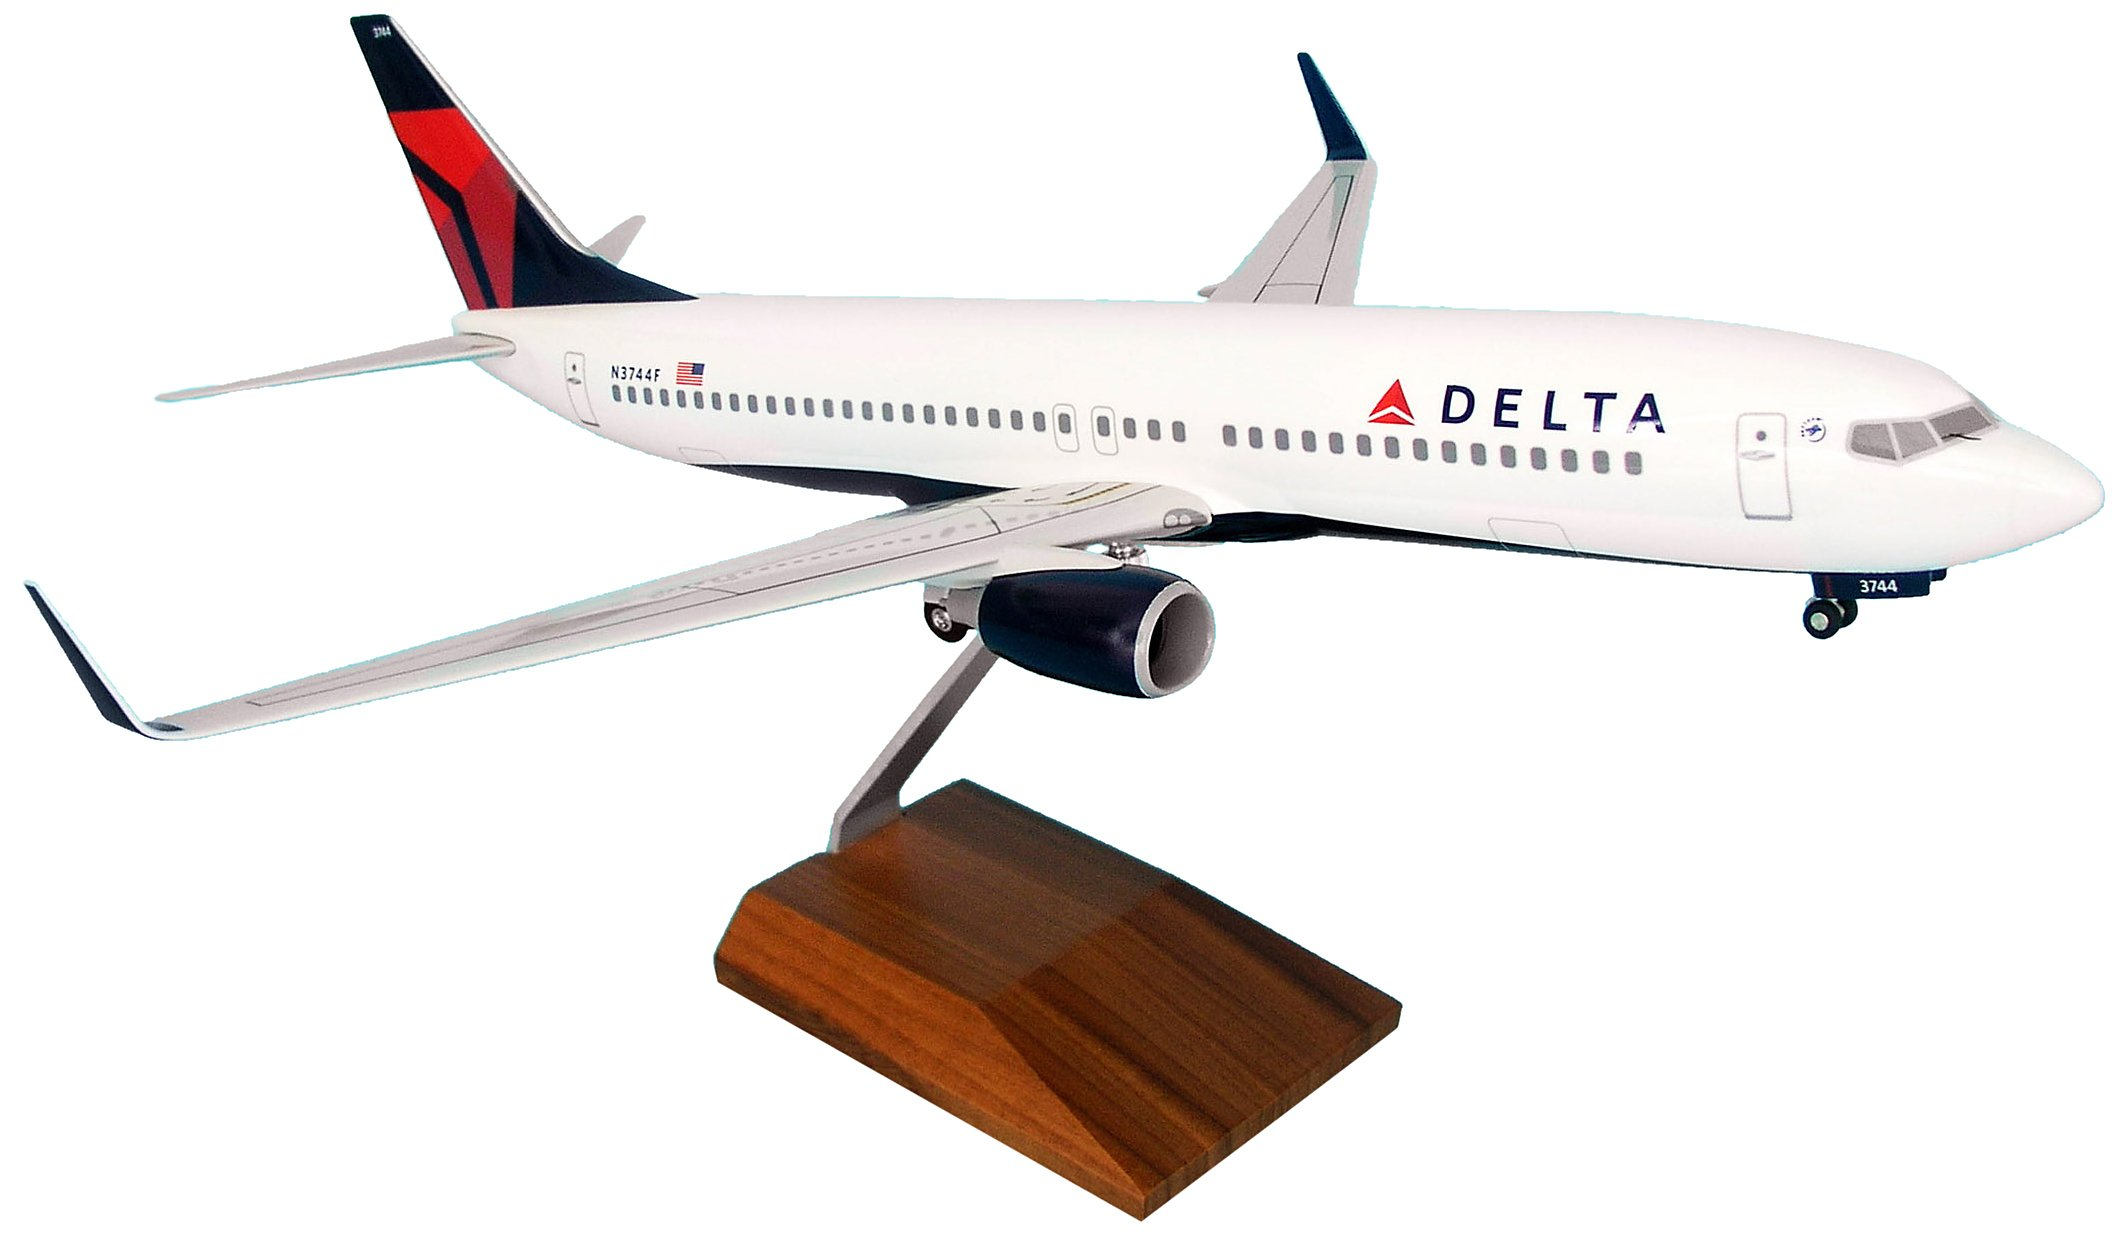 Daron Skymarks Delta 737-800 Model Kit with Gear and Wood Stand (1/100 Scale) by Daron